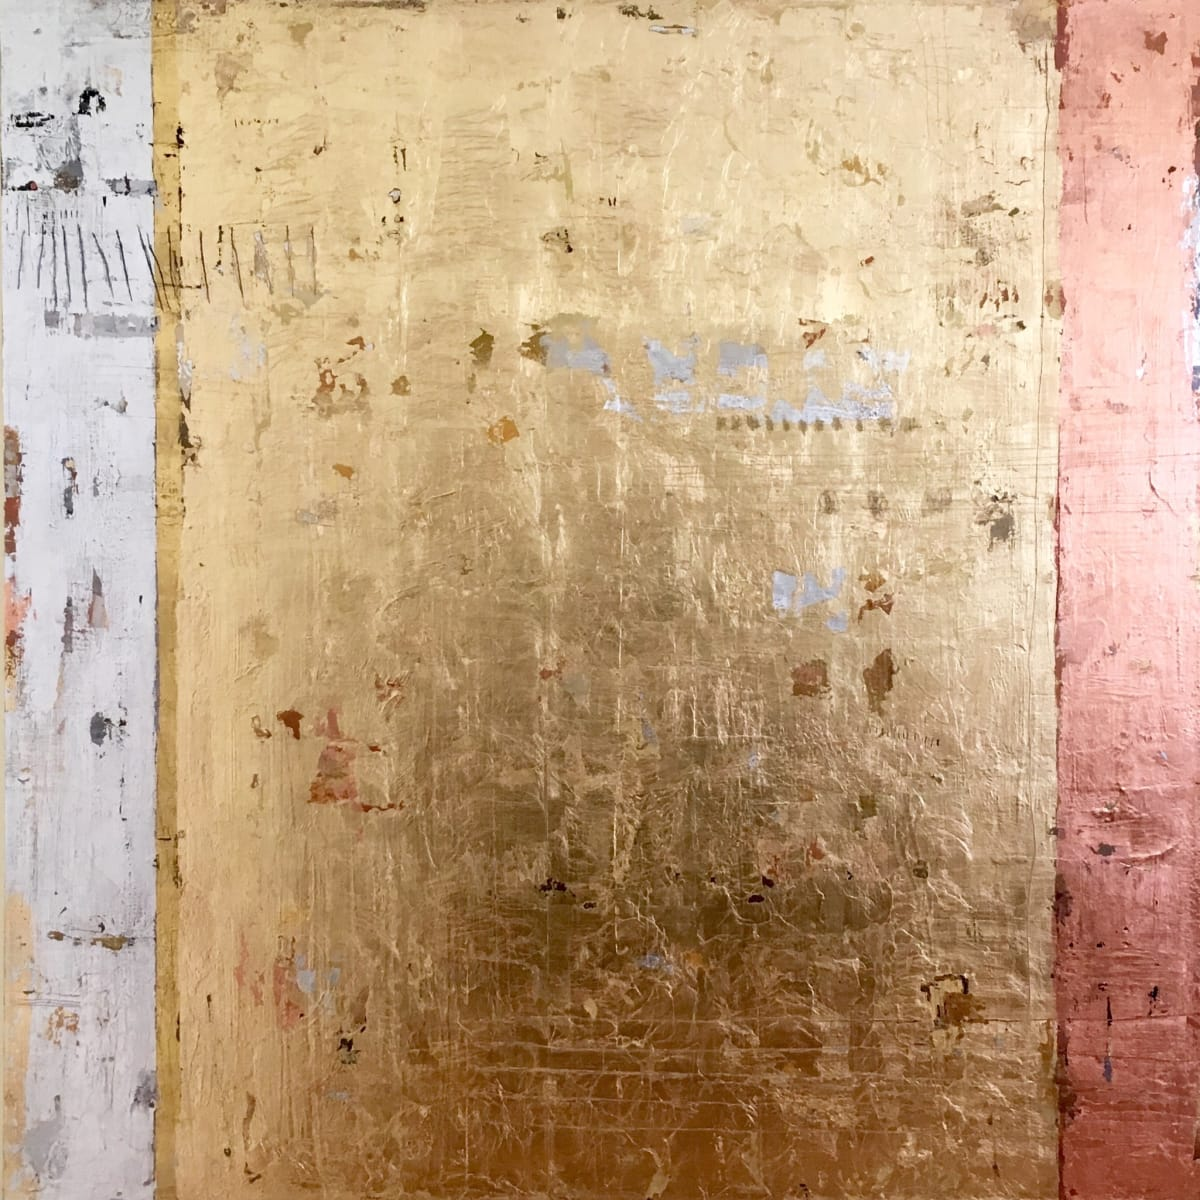 Takefumi Hori Gold No. 57 Mixed media on canvas 48 x 48 unframed